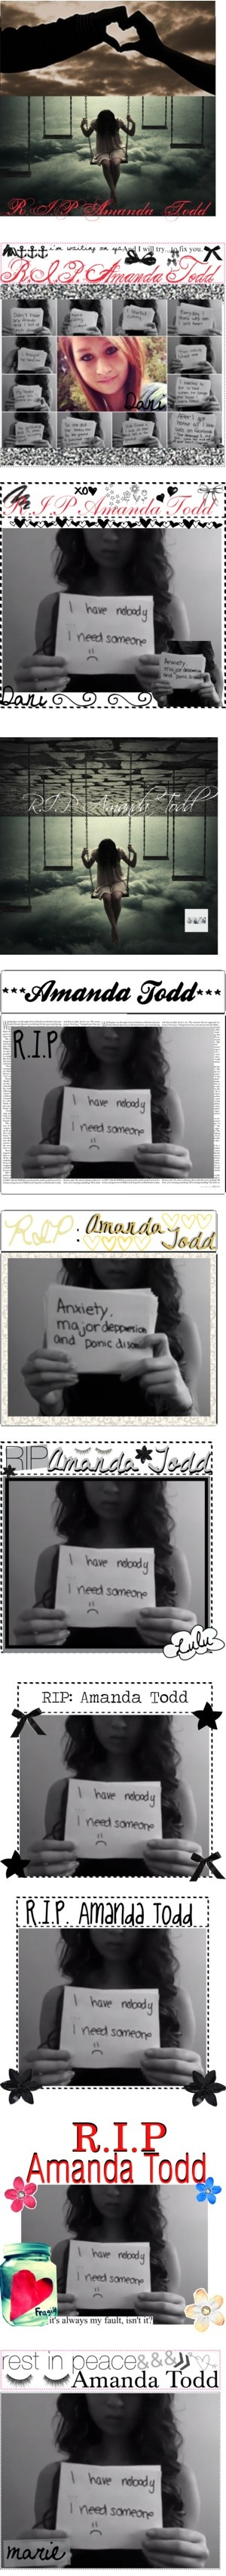 """""""R.I.P. Amanda Todd Sets"""" by pookieamg ❤ liked on Polyvore"""